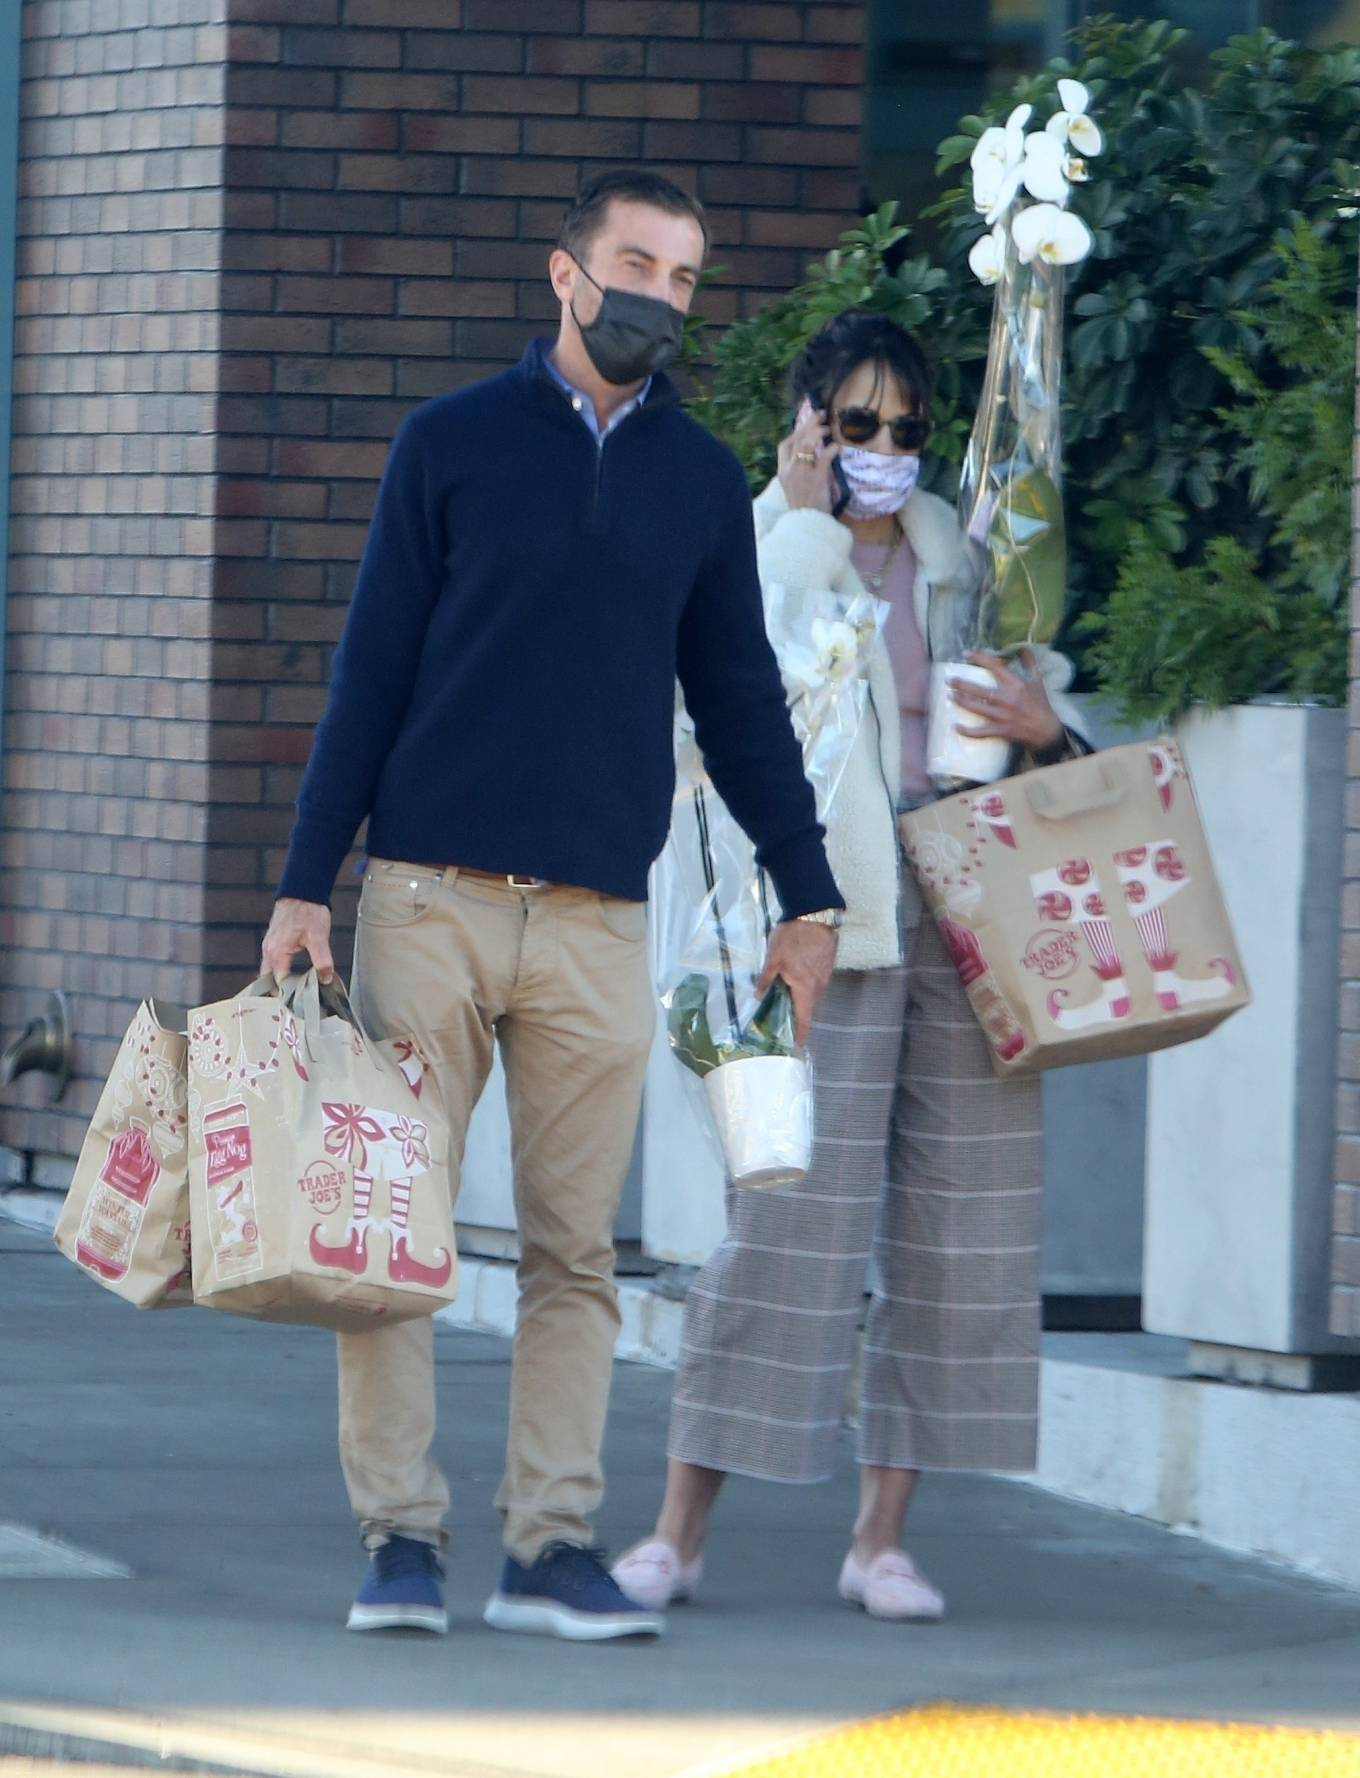 Jordana Brewster - Seen with orchids for New Year's Eve in Los Angeles